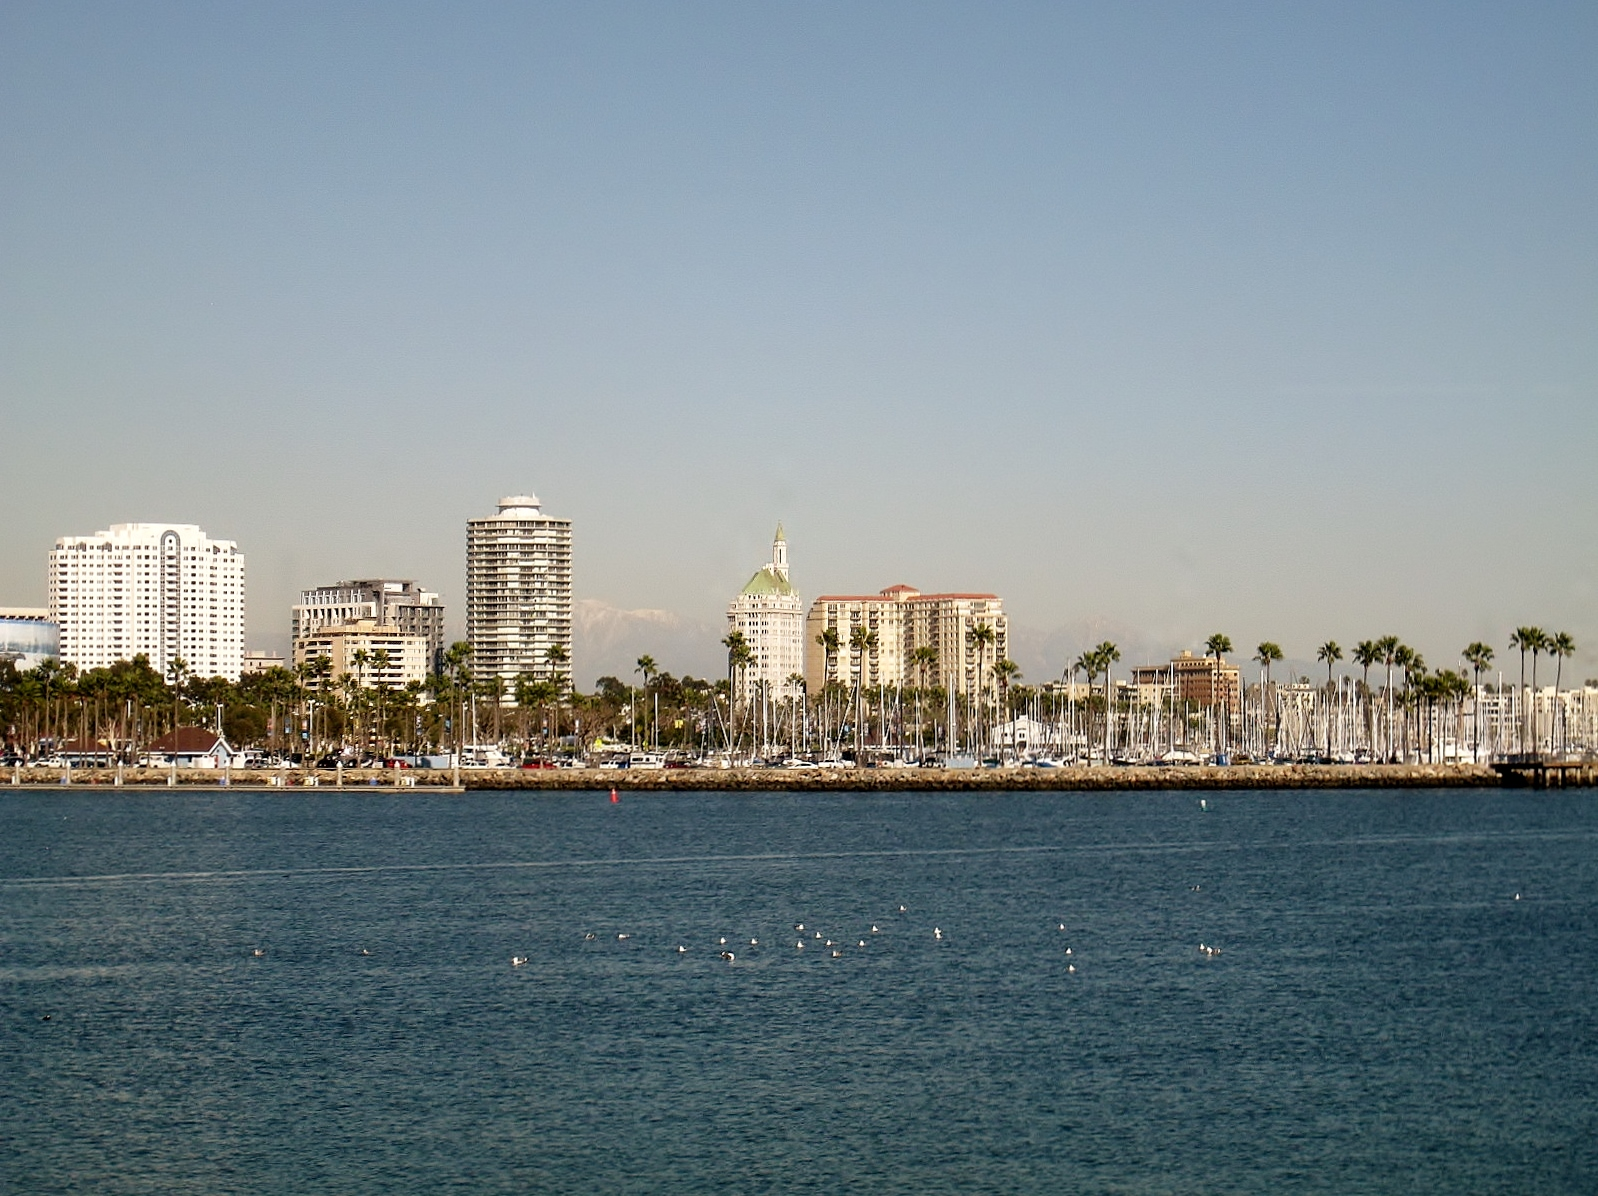 Long Beach/Southern California Real Estate: More Realistic